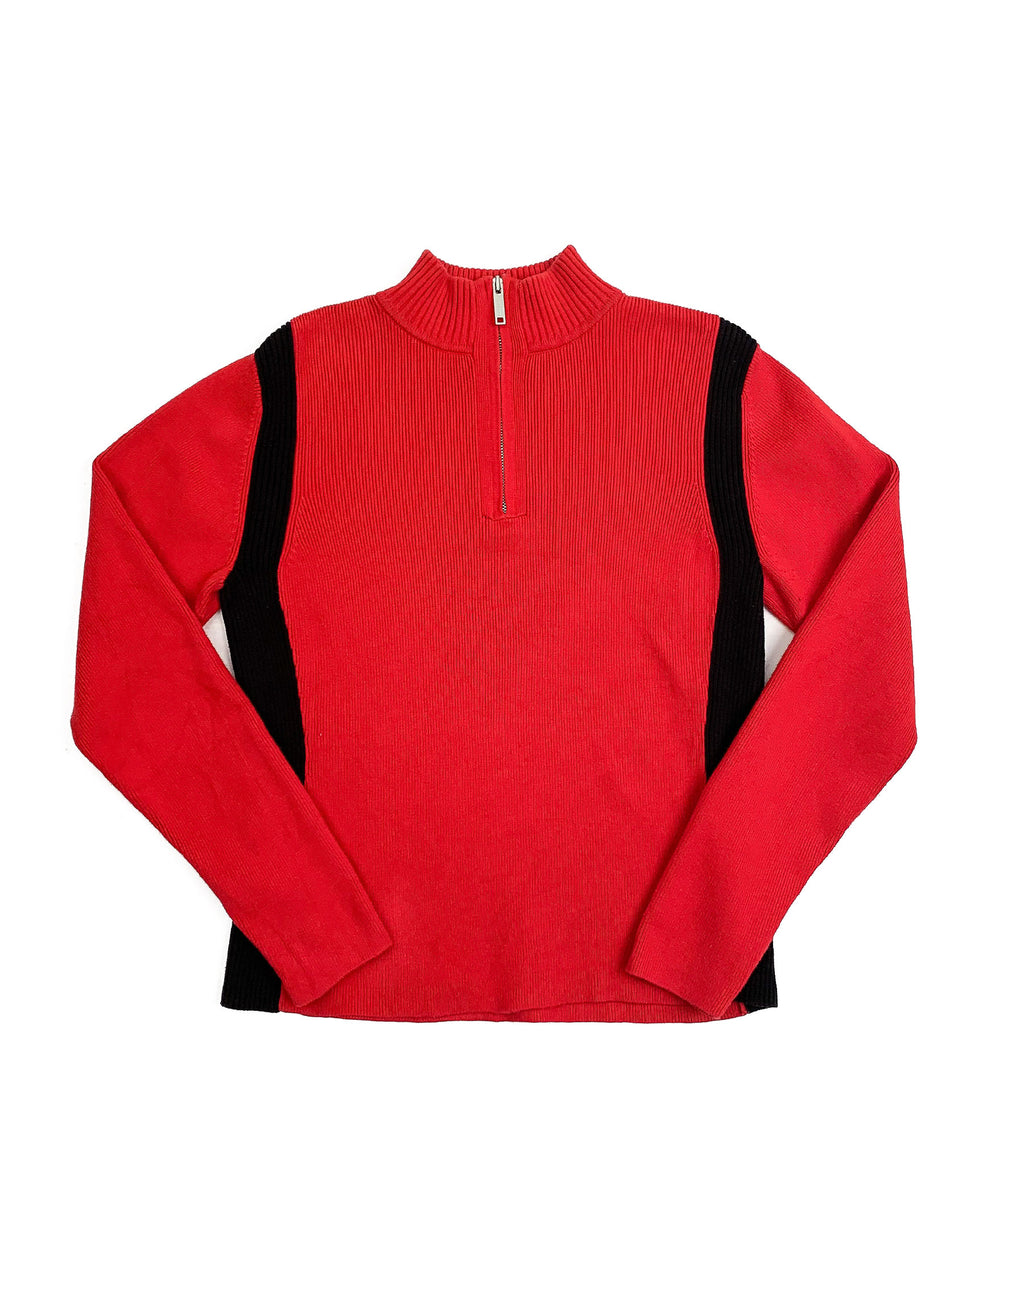 TOMMY HILFIGER RED PULLOVER